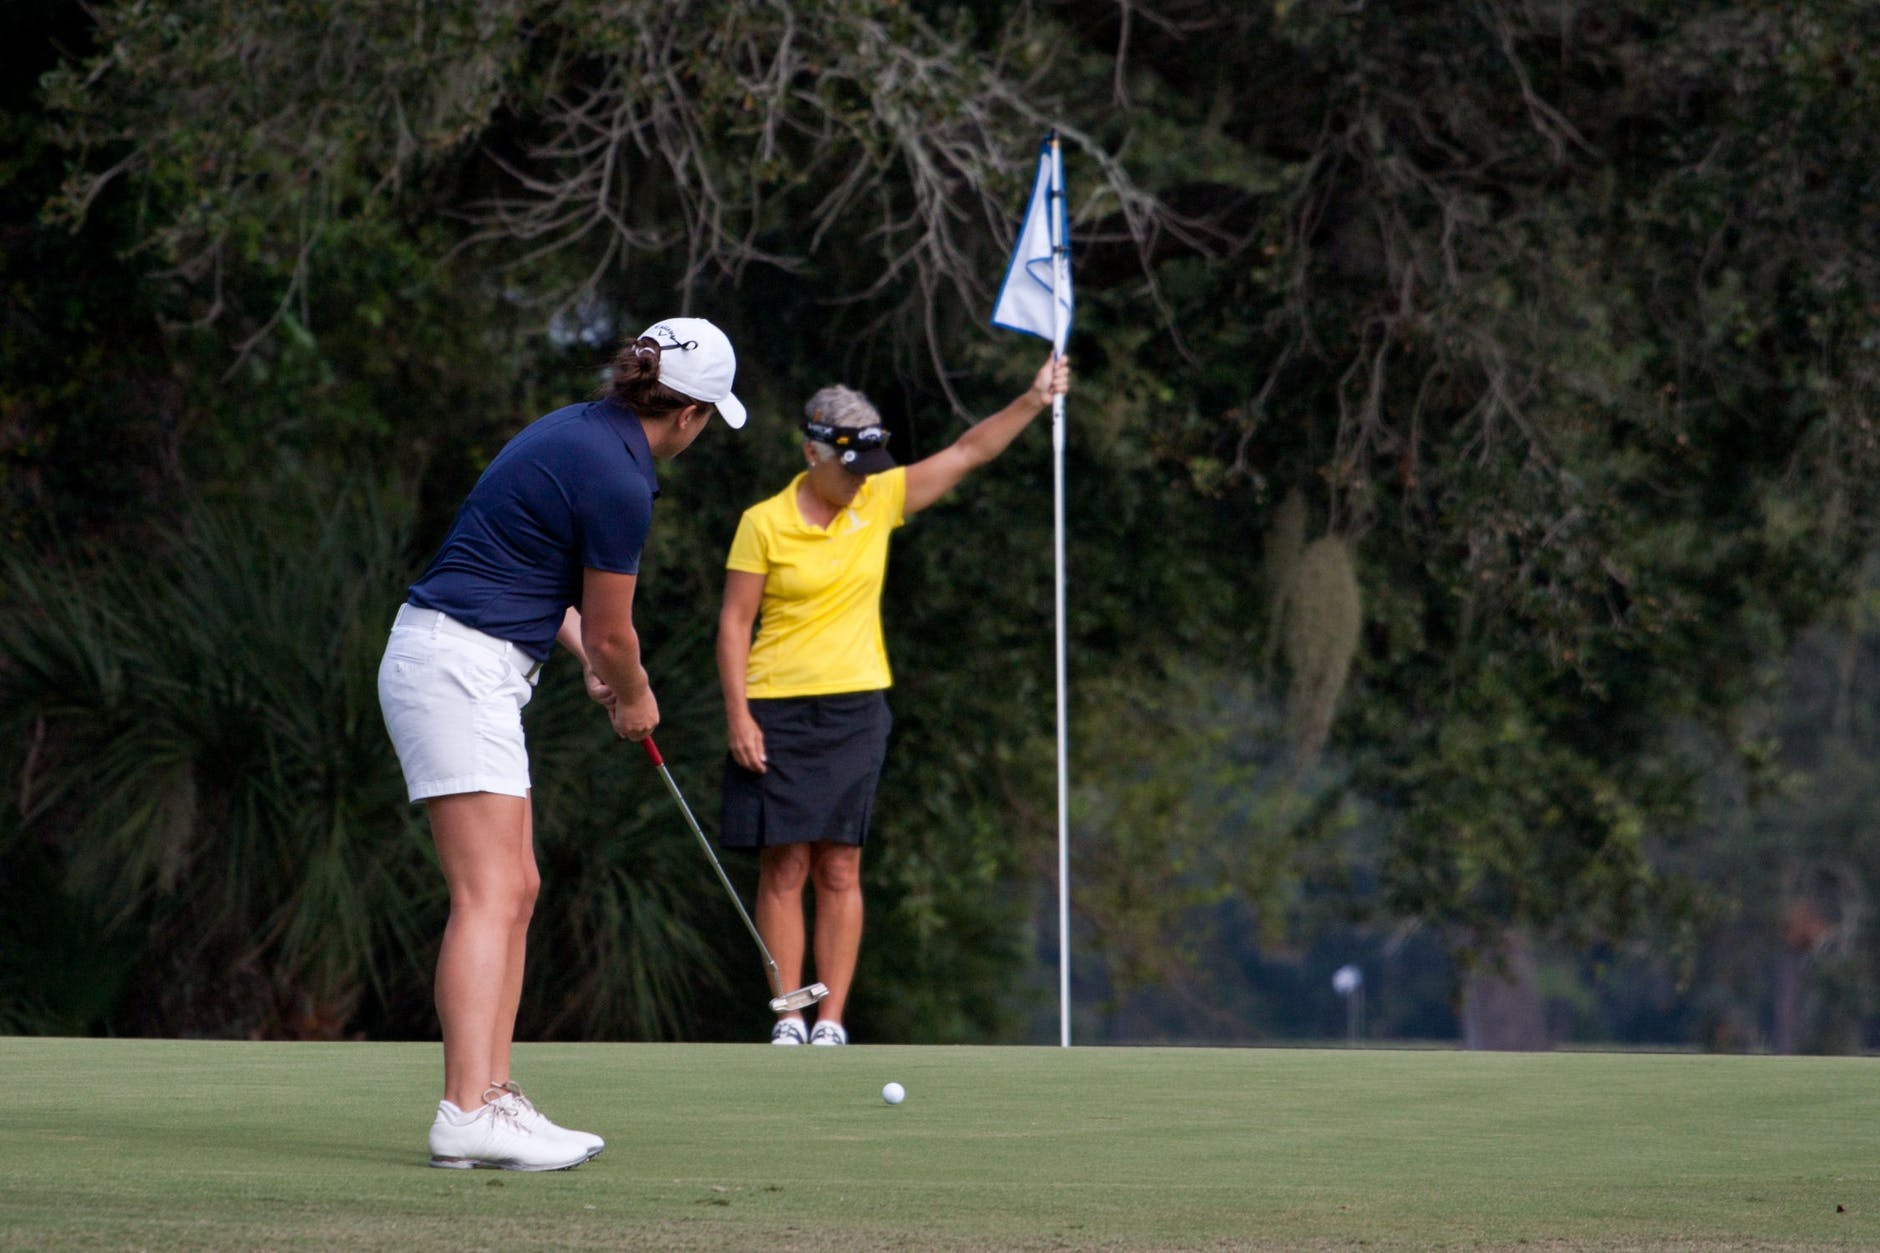 woman holding the flag and the one playing golf